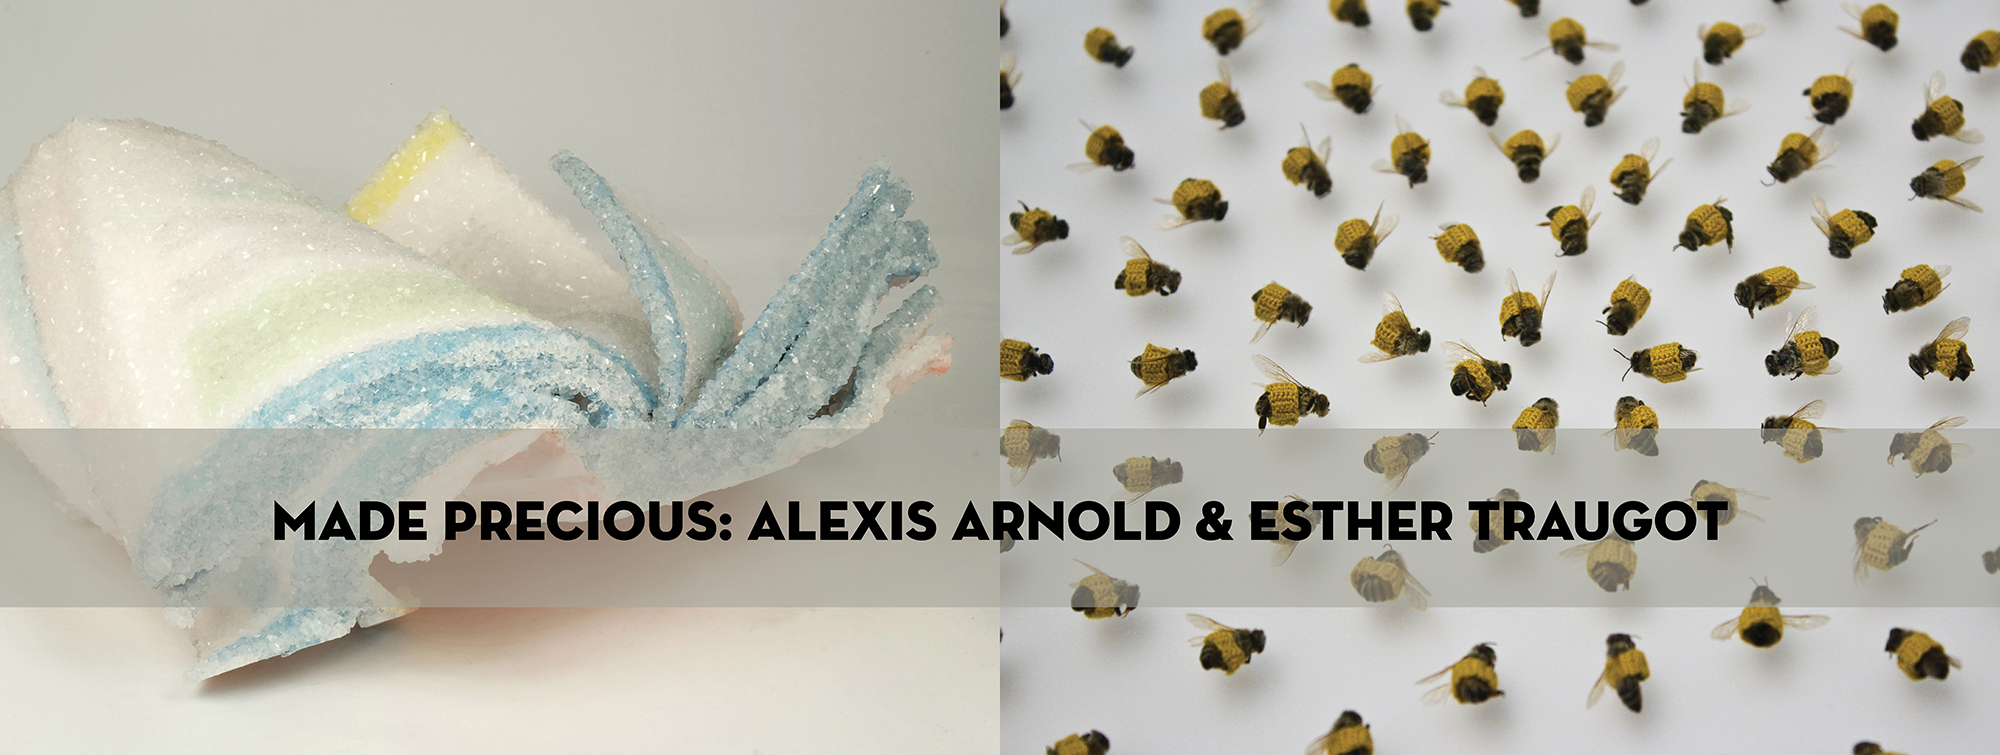 """I am excited to be exhibiting at  Napa Valley Museum  with  Esther Traugot ! My crystallized book series and a few other small sculptures are on display alongside Traugot's crochet covered natural specimens from August 3 through September 18 in the Spotlight Gallery at the museum.  """"In Arnold and Traugot's work objects both natural and man-made are made precious by encapsulating them in crystal and fiber. Their coverings act as eulogies to the fading culture of hardcopy books and to the dead representative bodies of a species in crisis. In their practices each artist transforms and elevates their subject, encouraging observation and attention."""" - Meagan Doud, Curator, Napa Valley Museum"""